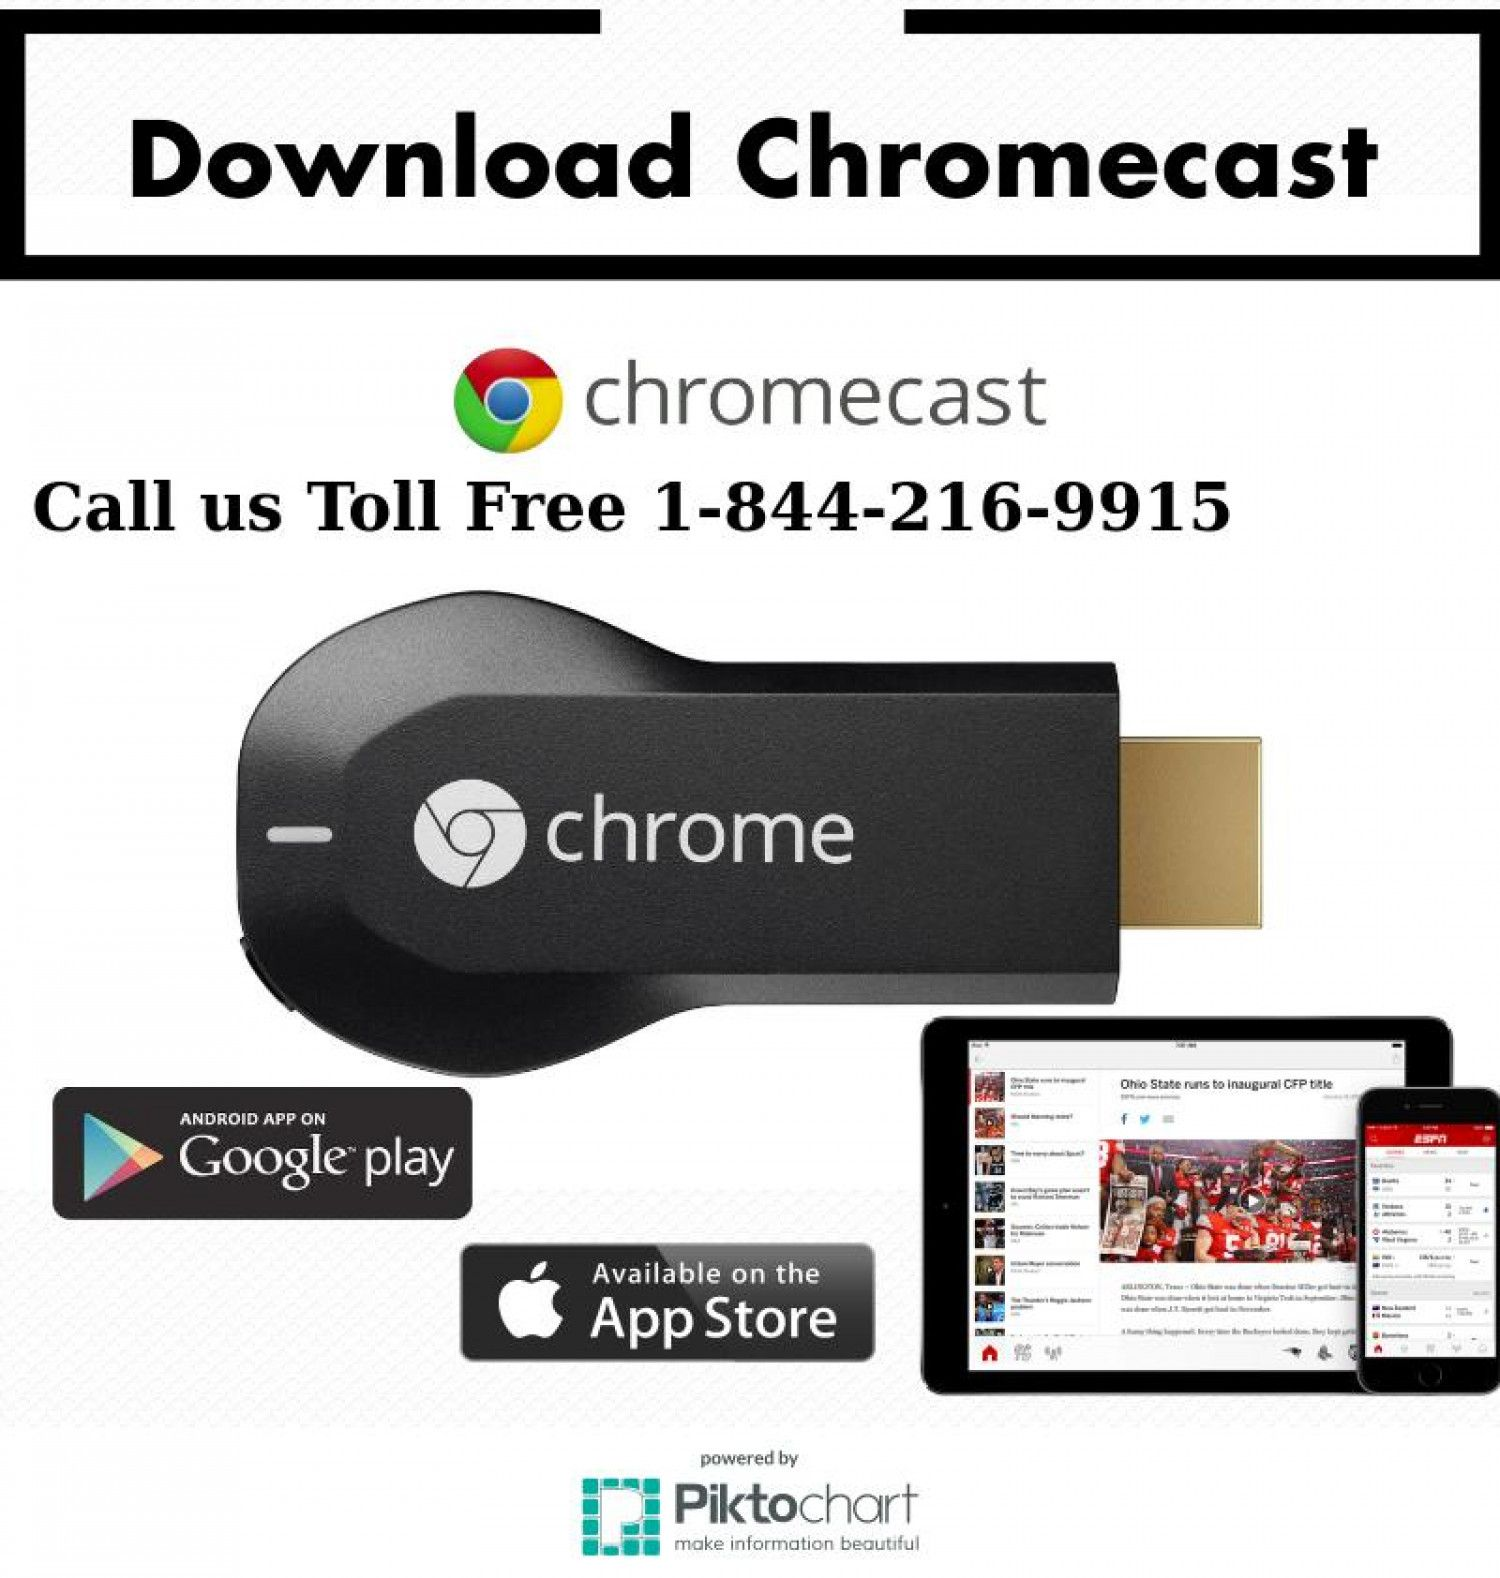 If you are looking to have Chromecast free download, then